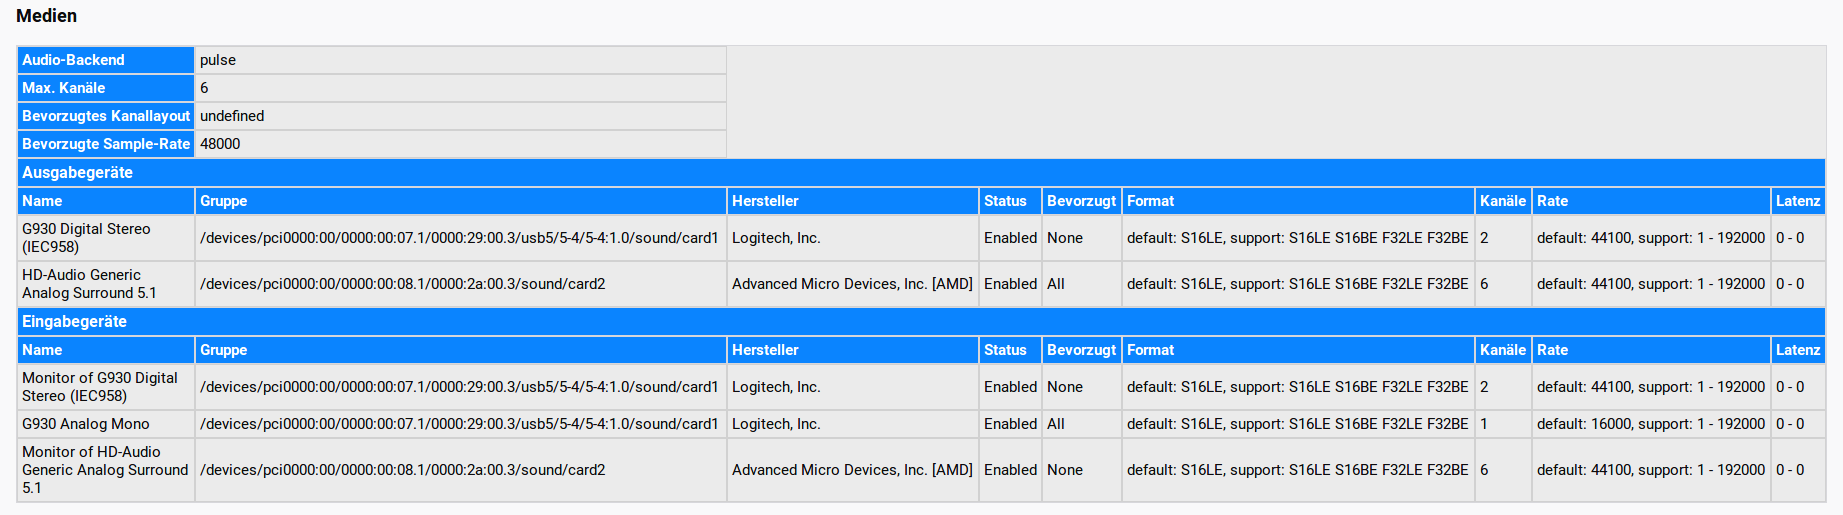 With 5 1 channel config, audio will be only on the left side